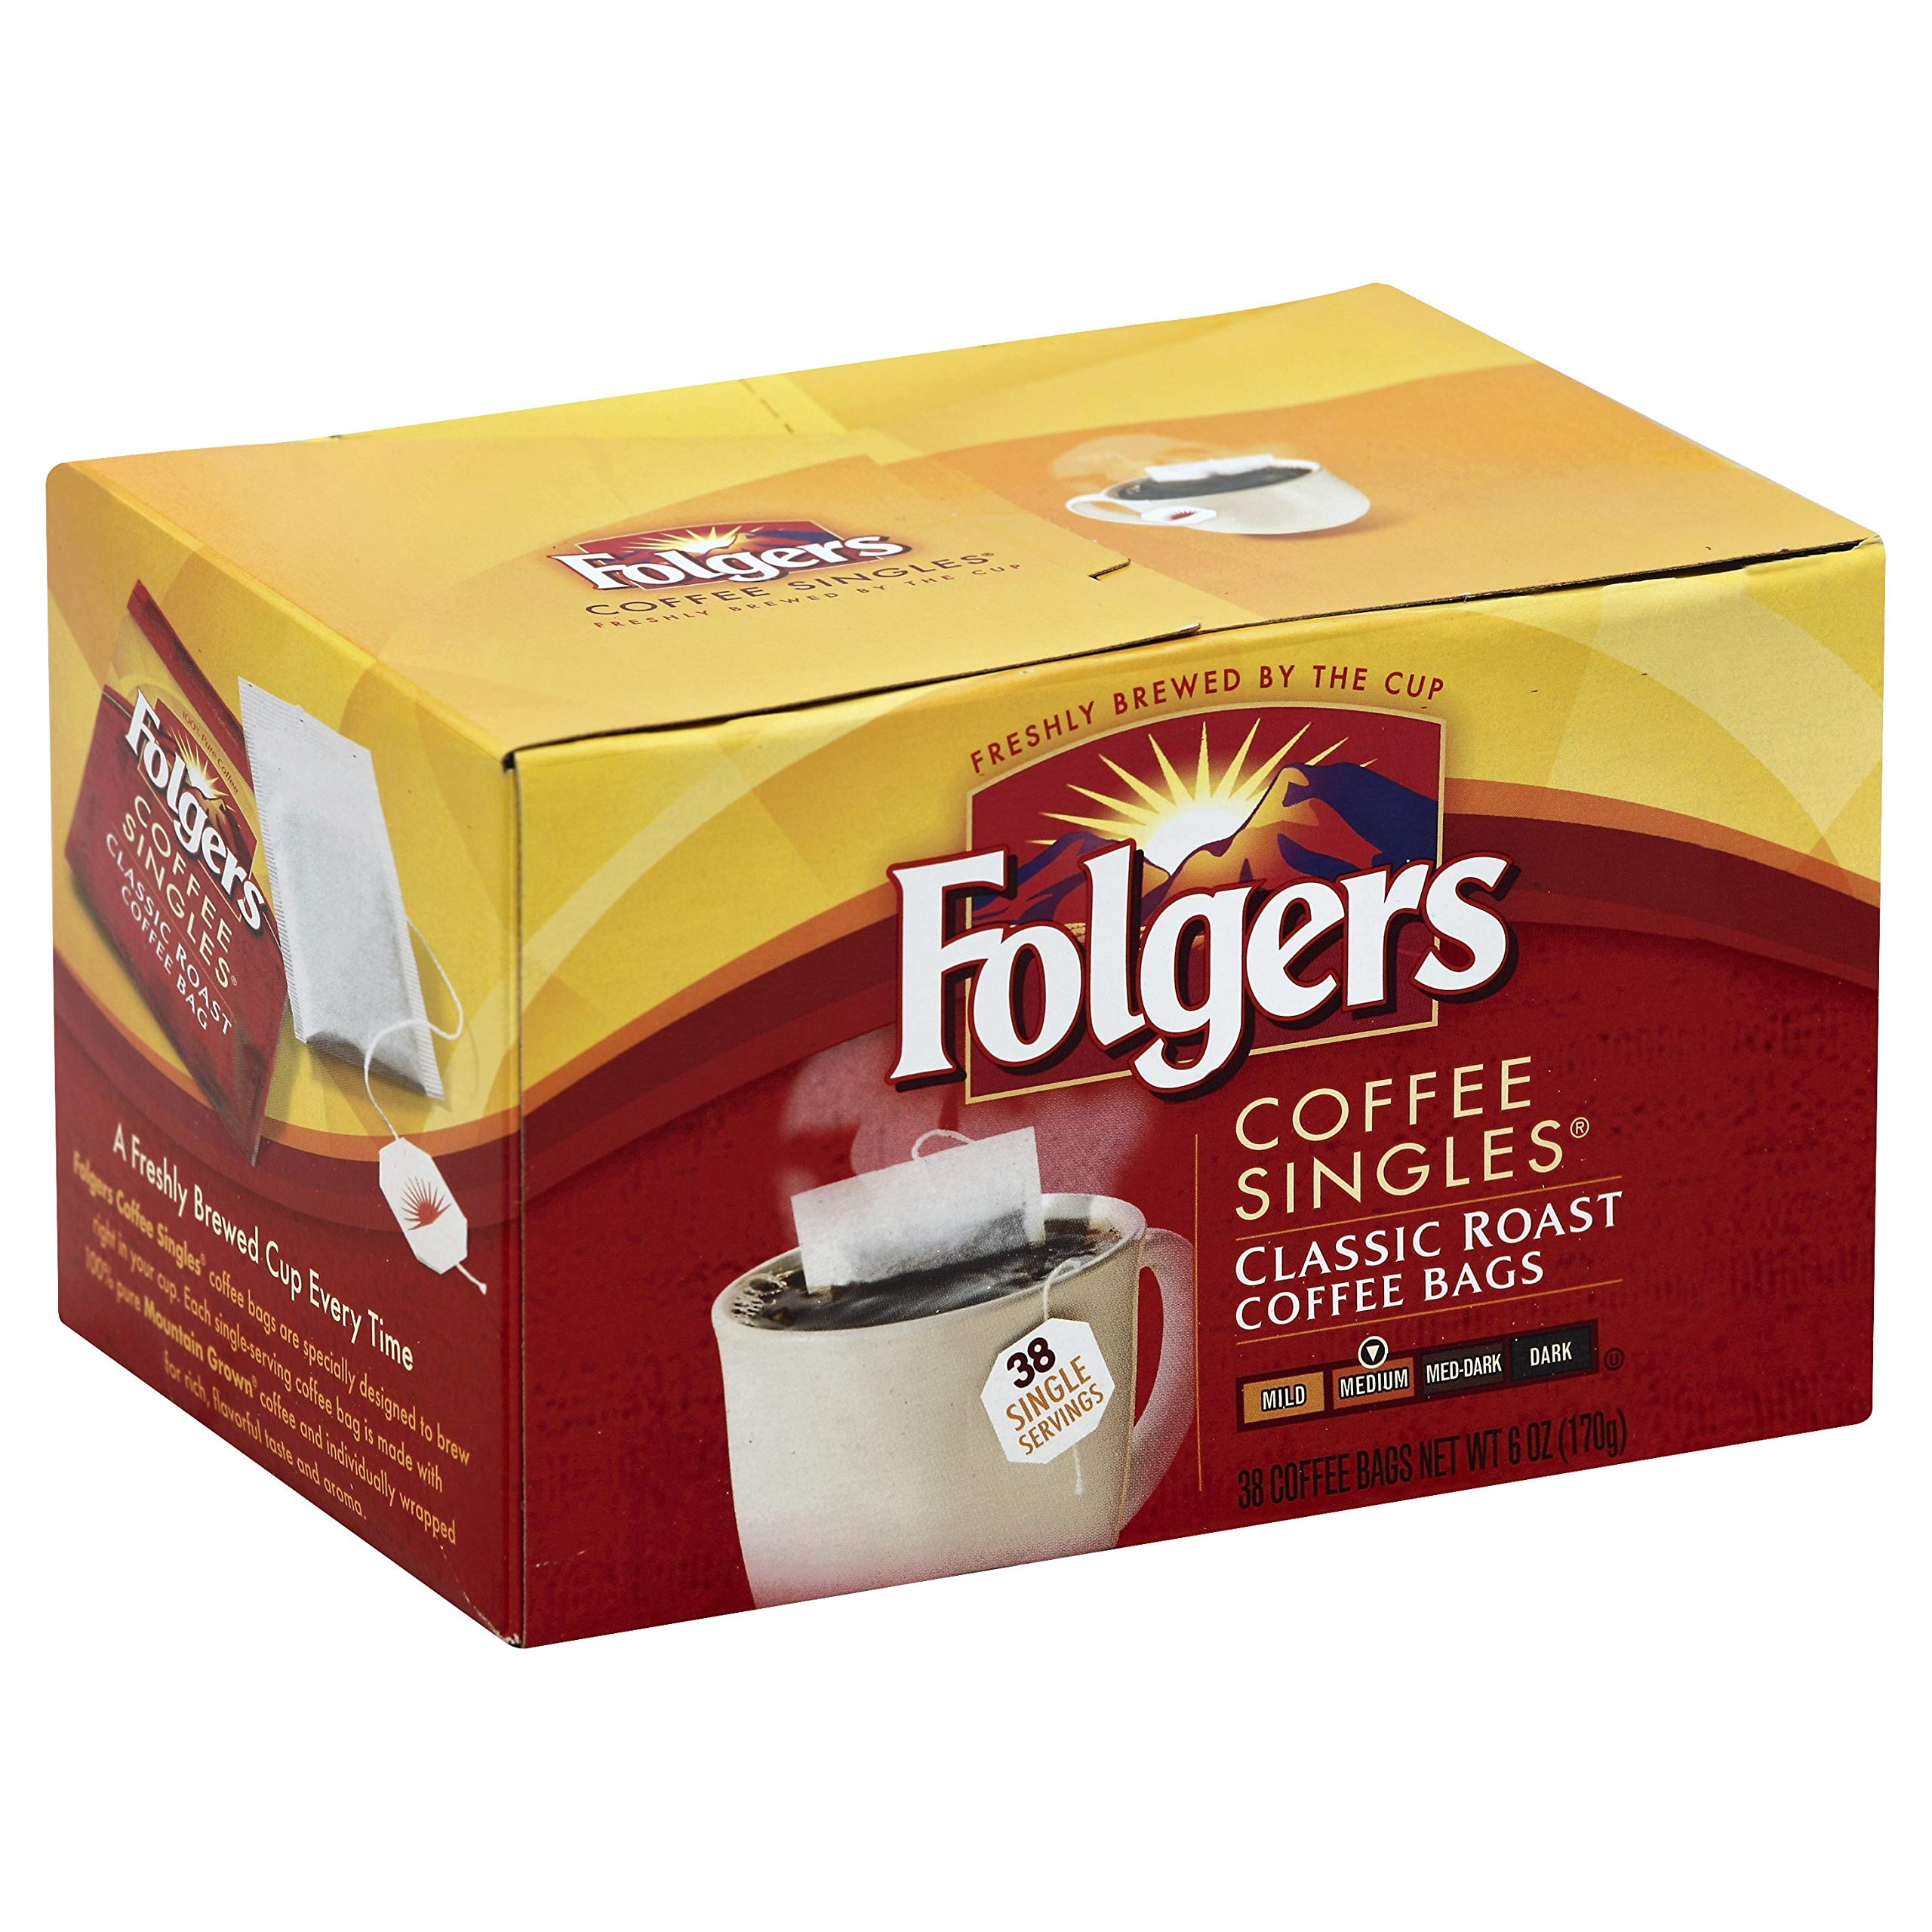 Folgers Classic Roast Ground Coffee Singles, Classic, 6 Count